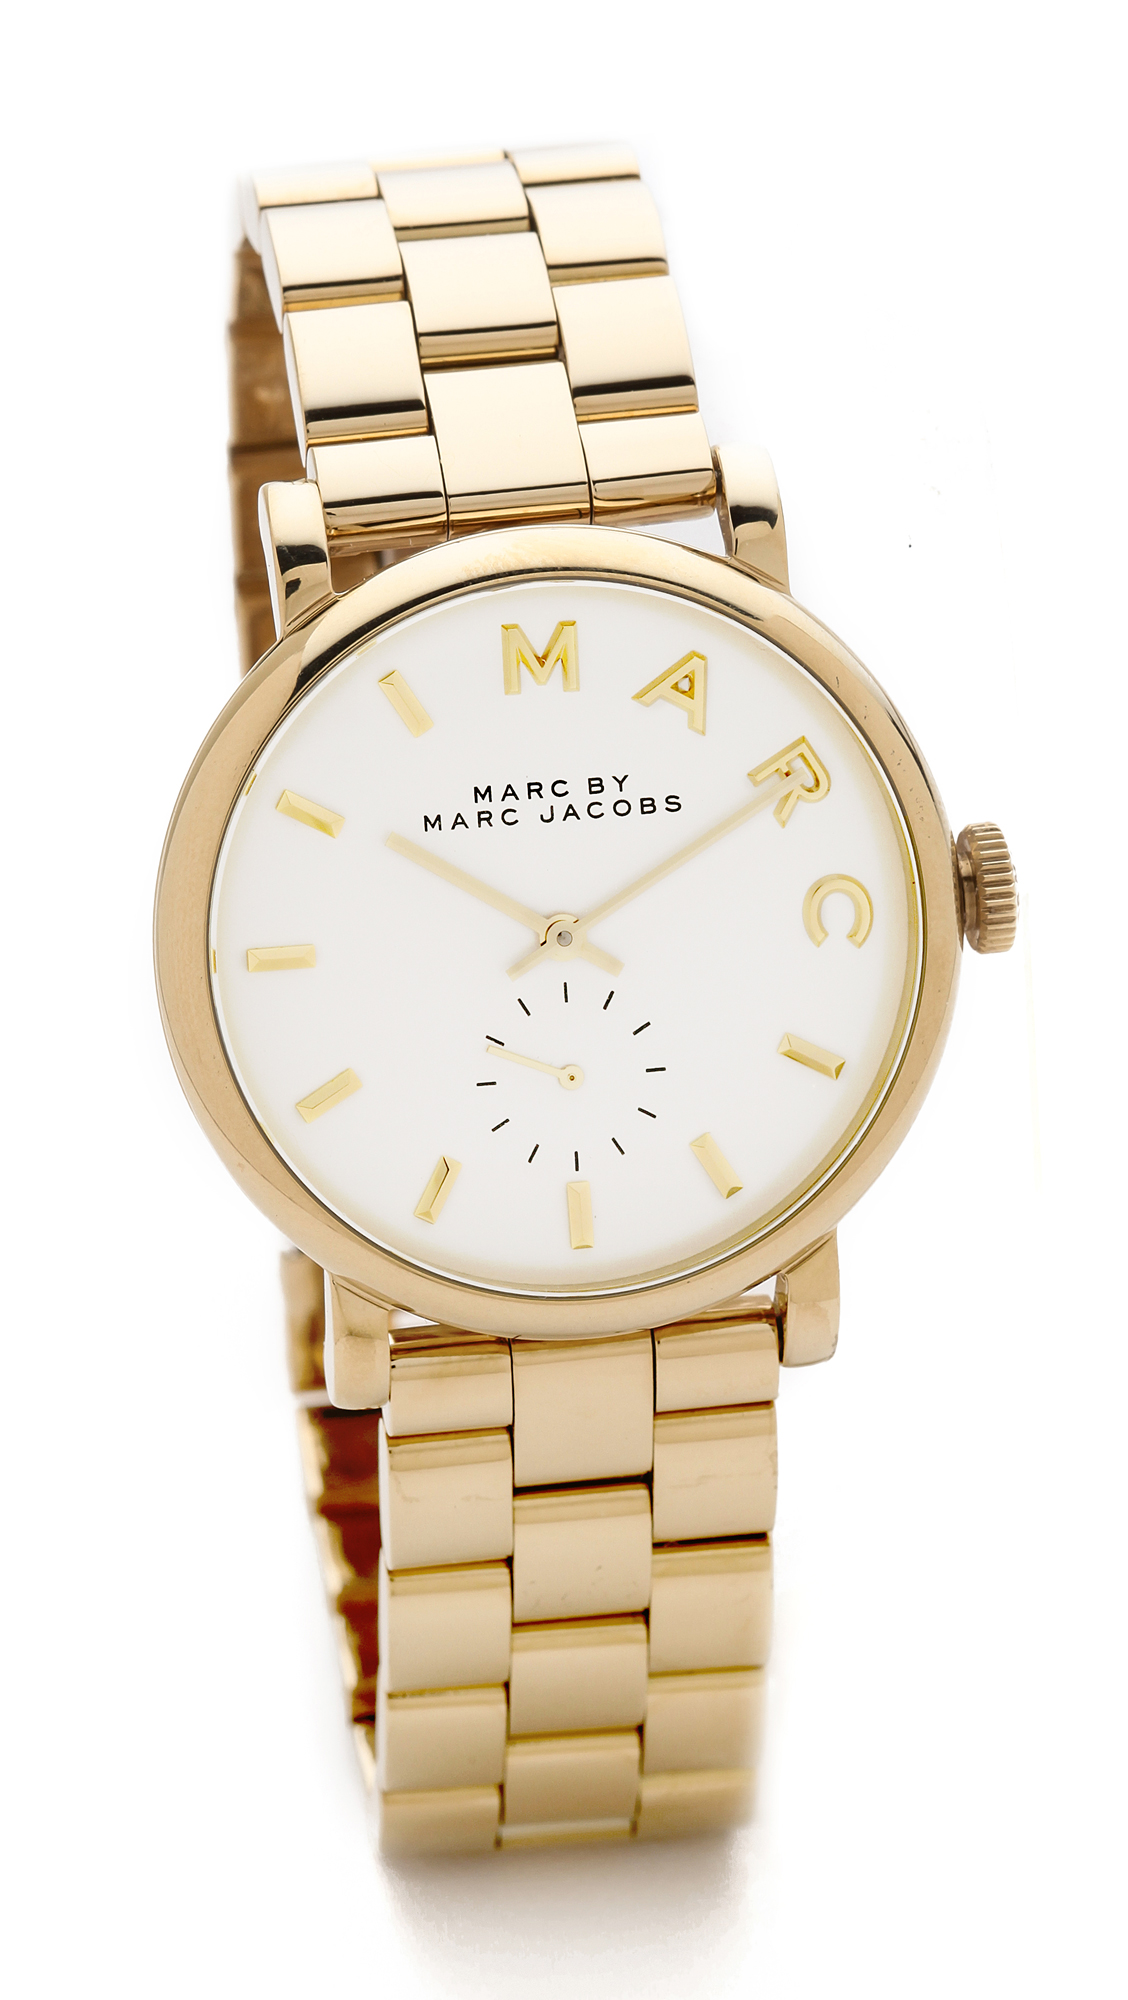 Marc by Marc Jacobs Часы Baker | SHOPBOP